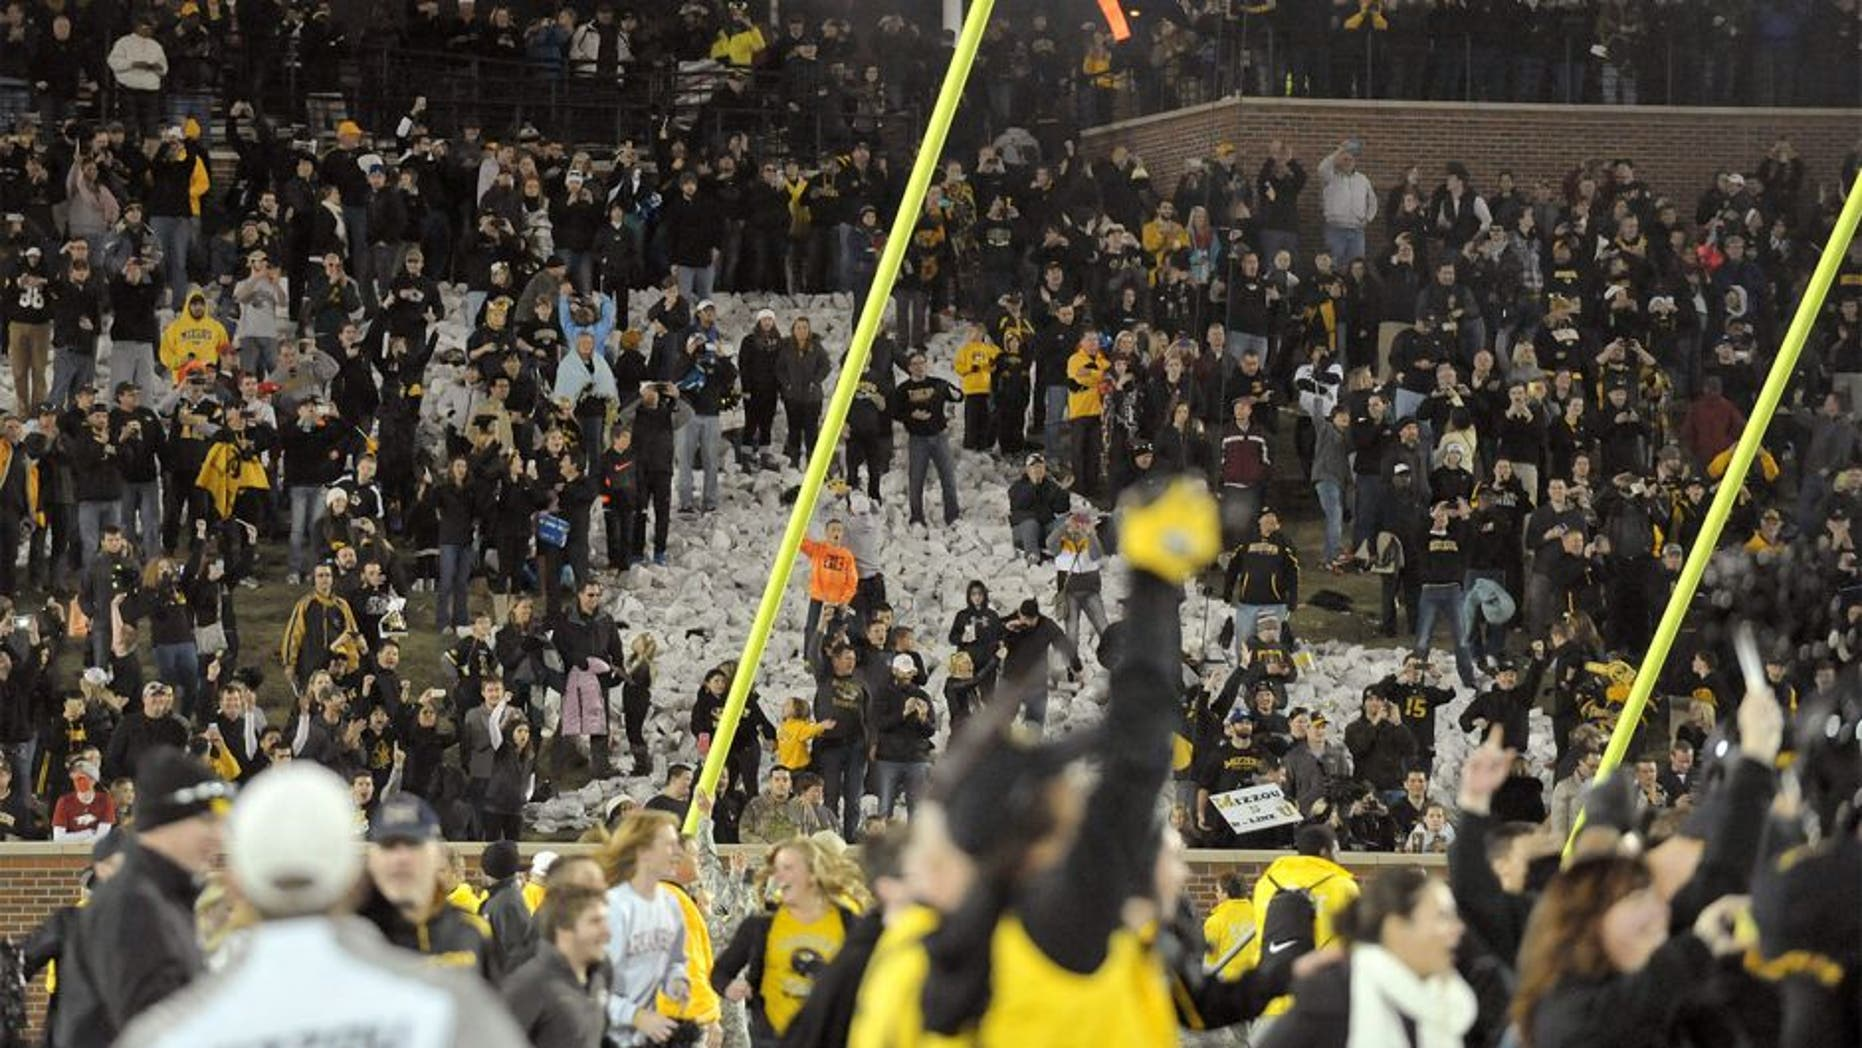 Nov 28, 2014; Columbia, MO, USA; Missouri Tigers fans and students storm the field and tear down the goalposts after the game against the Arkansas Razorbacks at Faurot Field. Missouri won 21-14. Mandatory Credit: Denny Medley-USA TODAY Sports